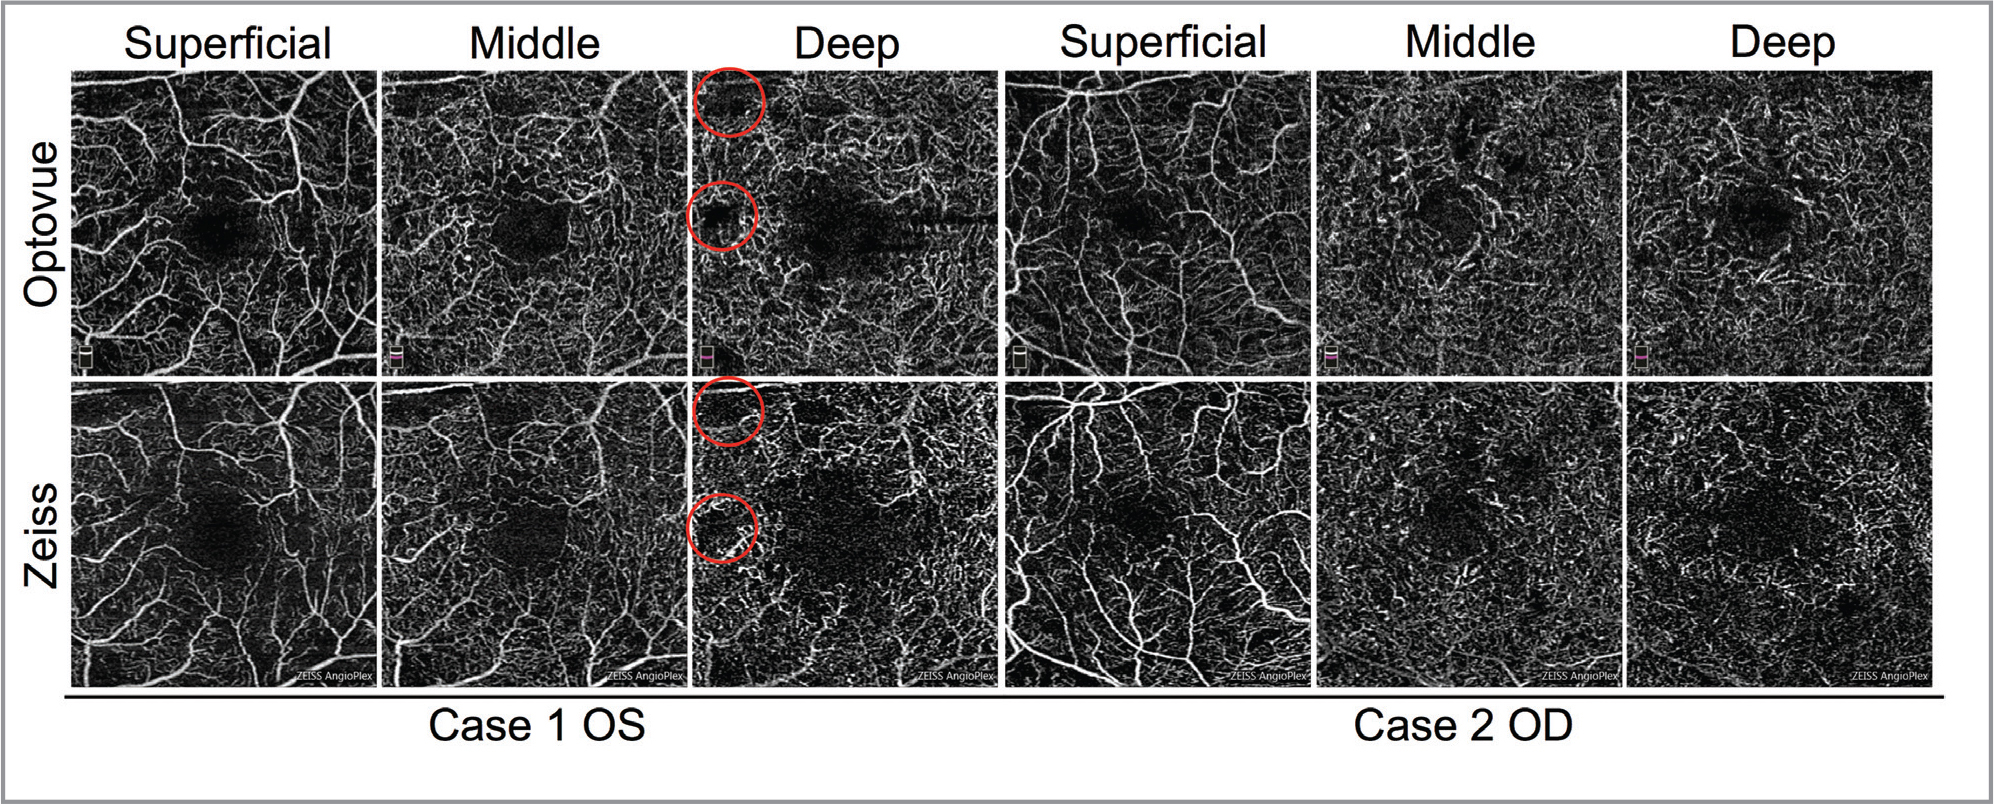 Recapitulation of optical coherence tomography angiography plexus layers. Representative images are shown depicting the qualitative reproduction of the superficial, middle, and deep capillary plexus layers on the Zeiss instrument. Red circles indicate areas of capillary dropout that are visualized using both devices.